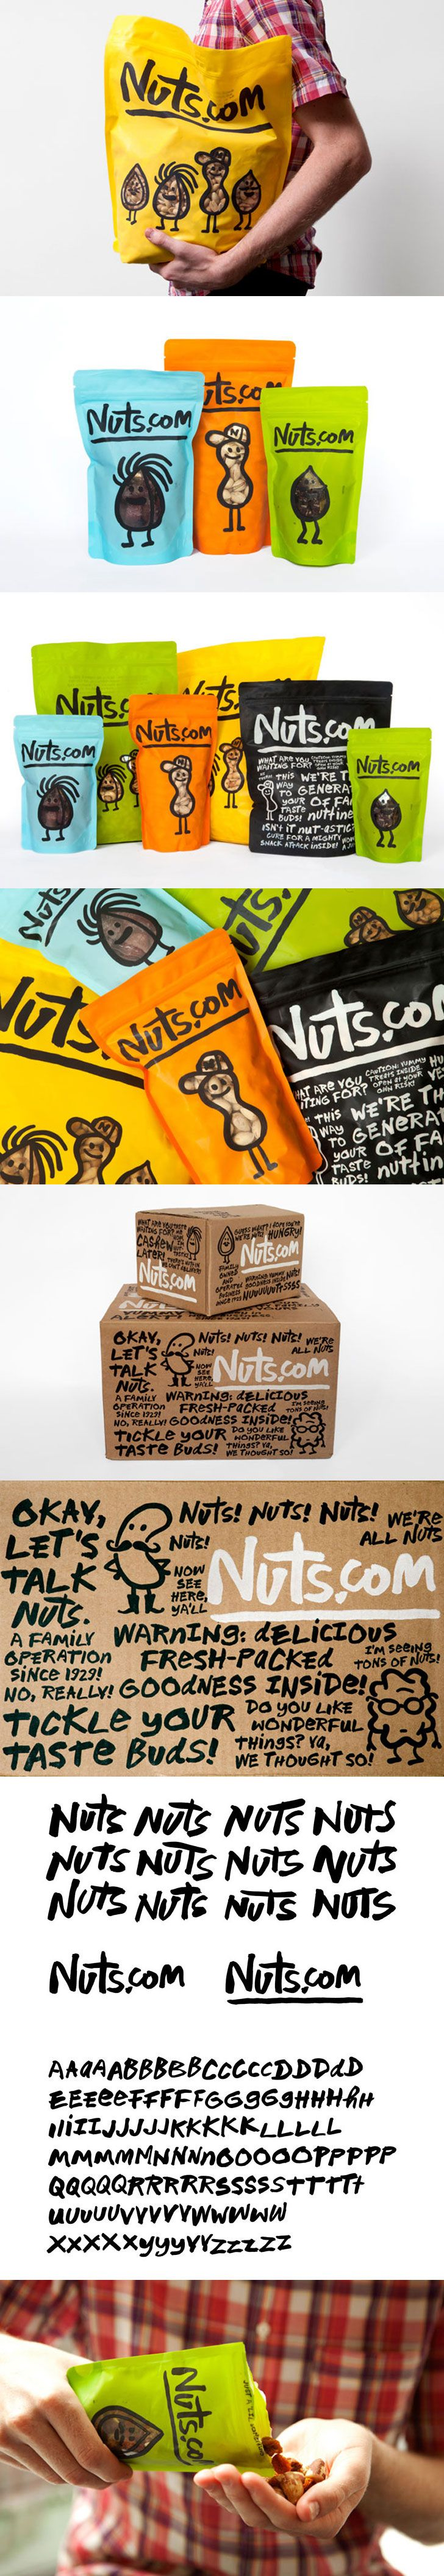 One of my favs Expanded Nuts.com #packaging by Pentagram. Michael Bierut, partner-in-charge and designer; Katie Barcelona and Aron Fay, designers. Illustrations by Christoph Niemann. Font design by Jeremy Mickel based on a hand-drawn alphabet by Michael Bierut. PD